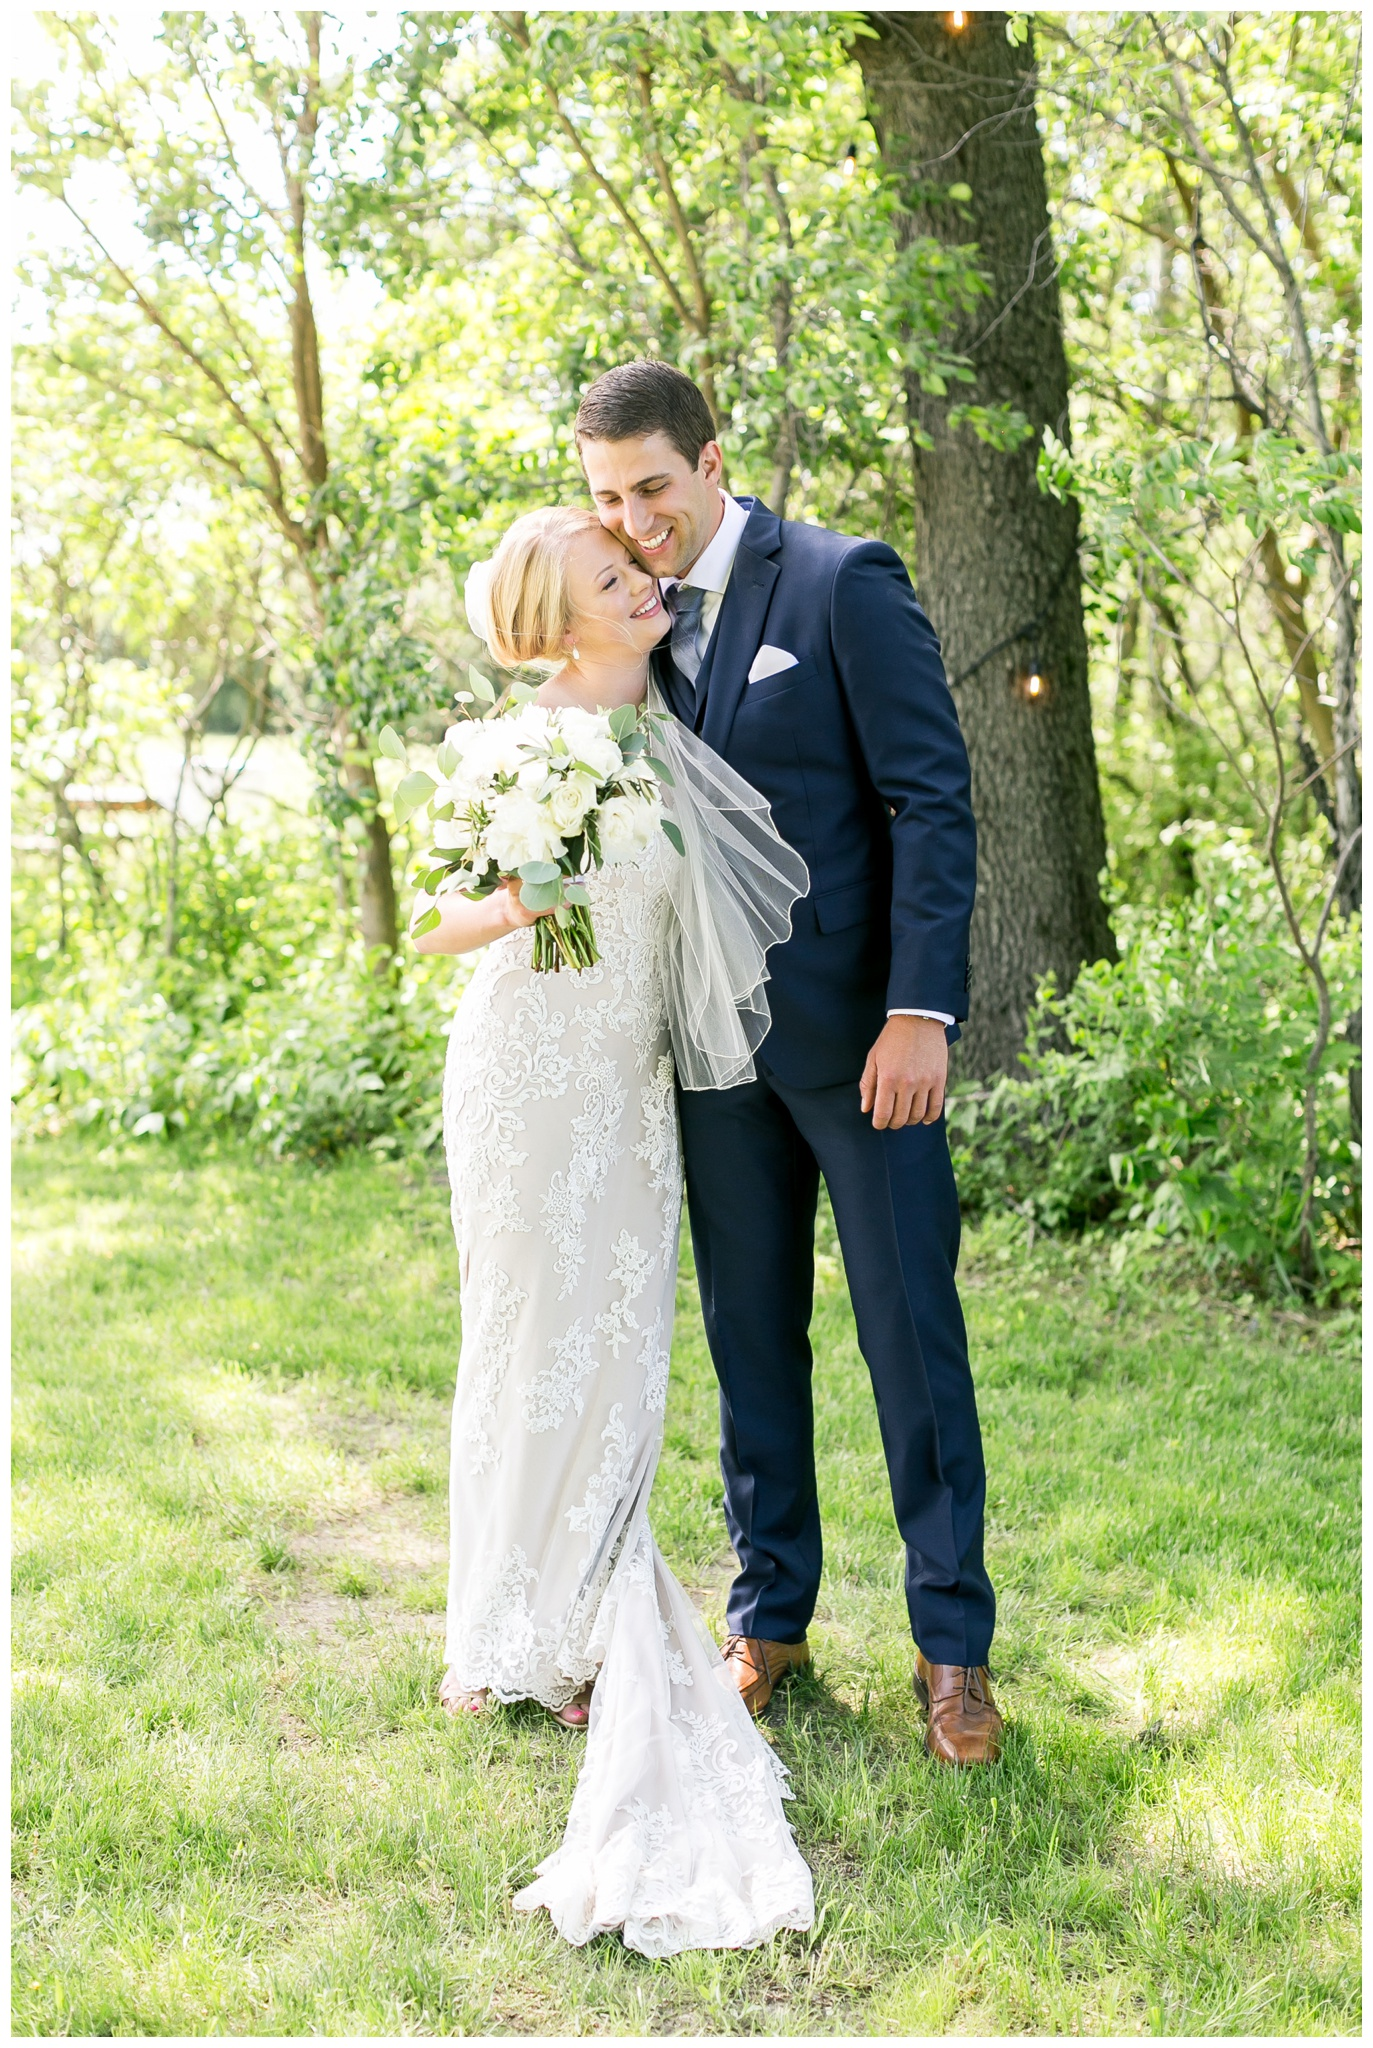 private_estate_wedding_stoughton_wisconsin_wedding_caynay_photo_3837.jpg